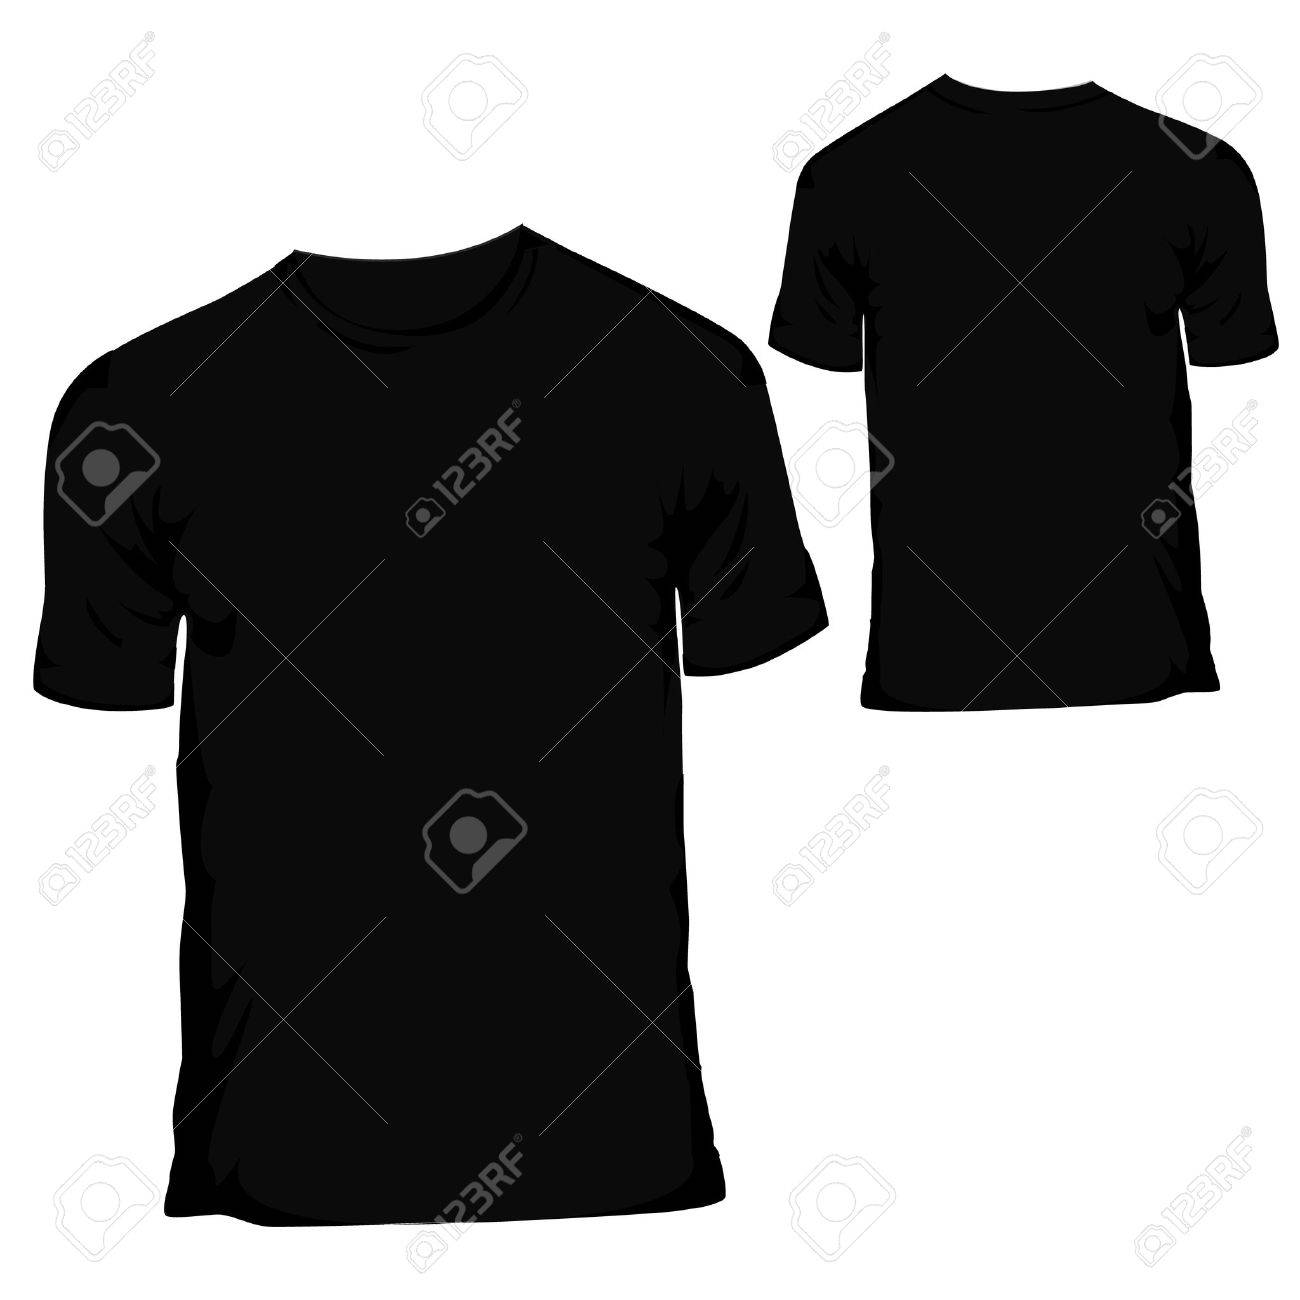 Black t shirt design template -  Black Blank T Shirt Design Template For Menswear Download